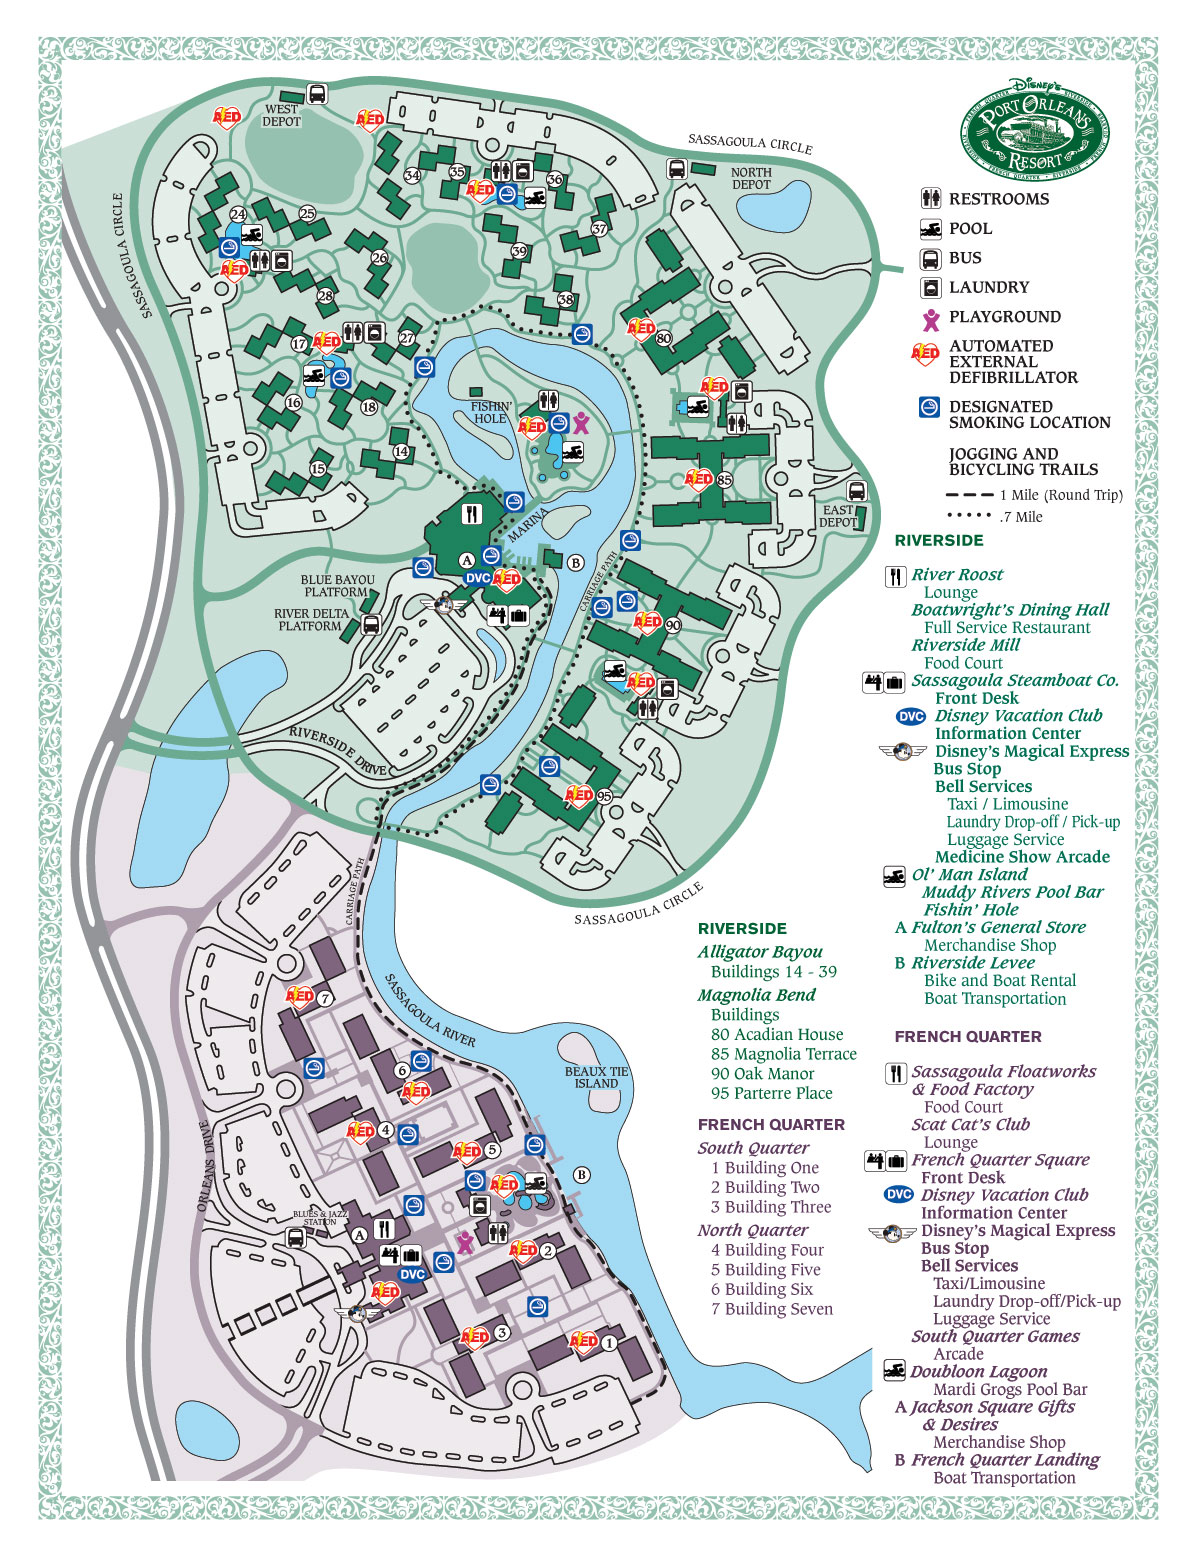 Map of Disney's Port Orleans Resorts.  French Quarter is the smaller, lower section while Riverside is the larger section at the top.